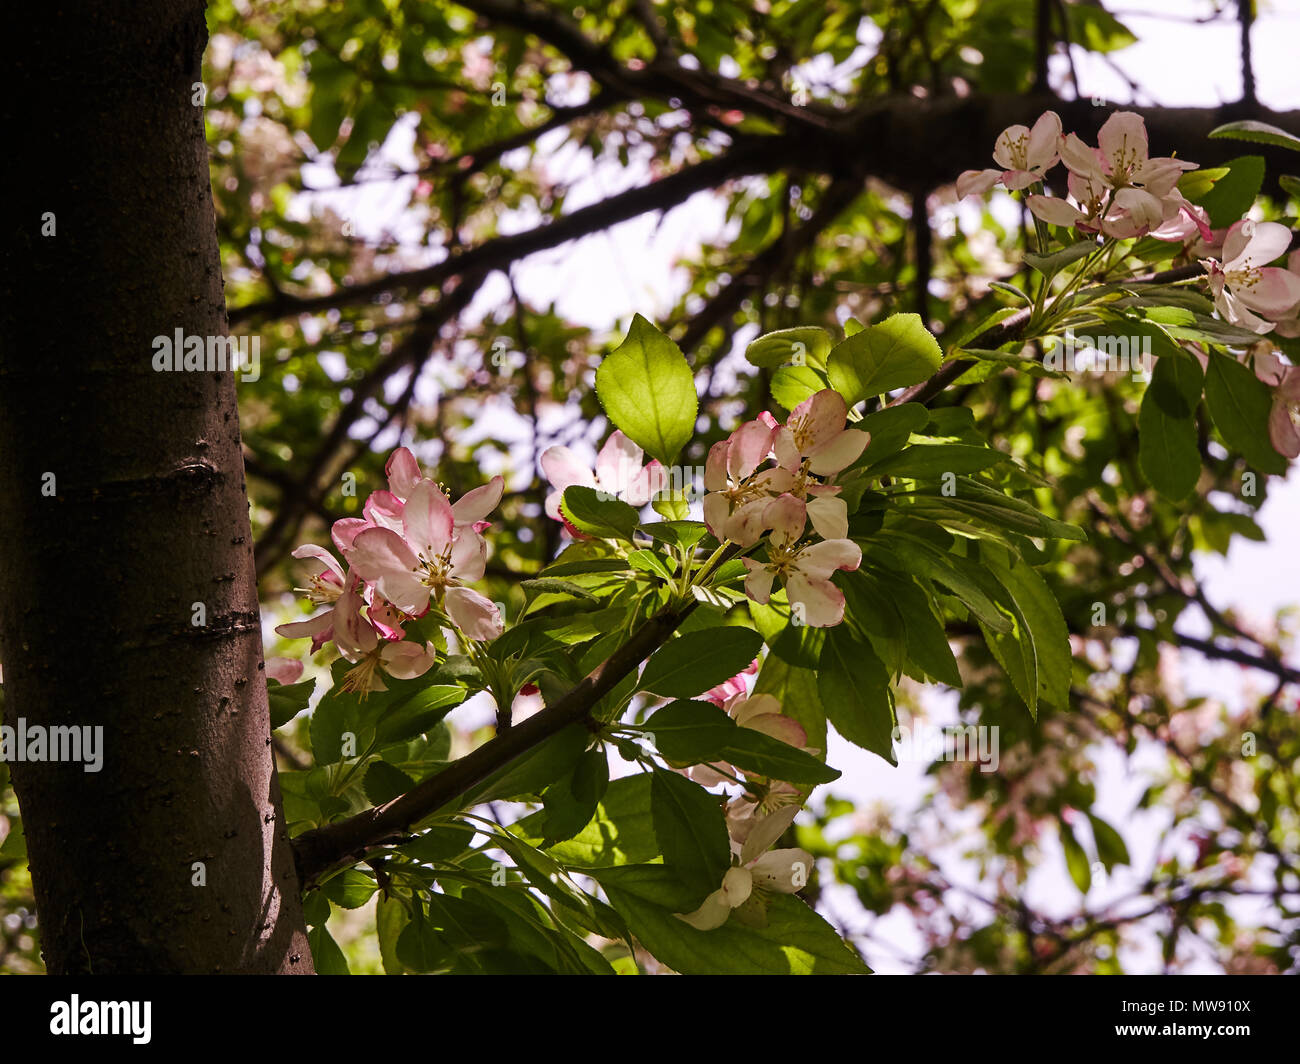 Looking Up At A Tree With Pink And White Flowers Stock Photo